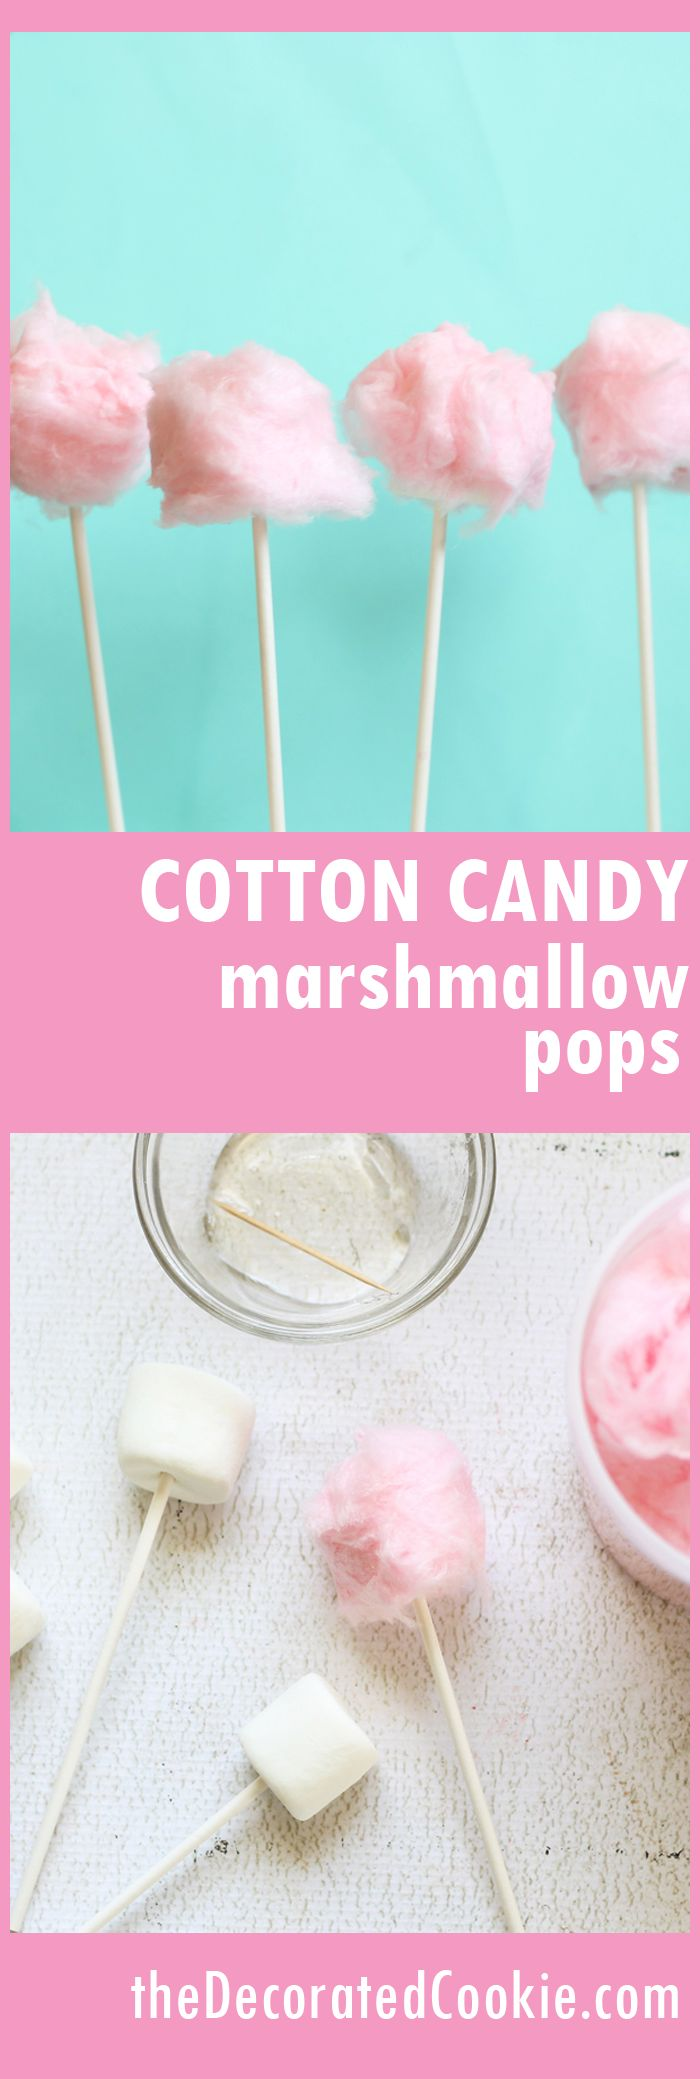 cotton candy marshmallow pops -- cute Valentine's Day treat